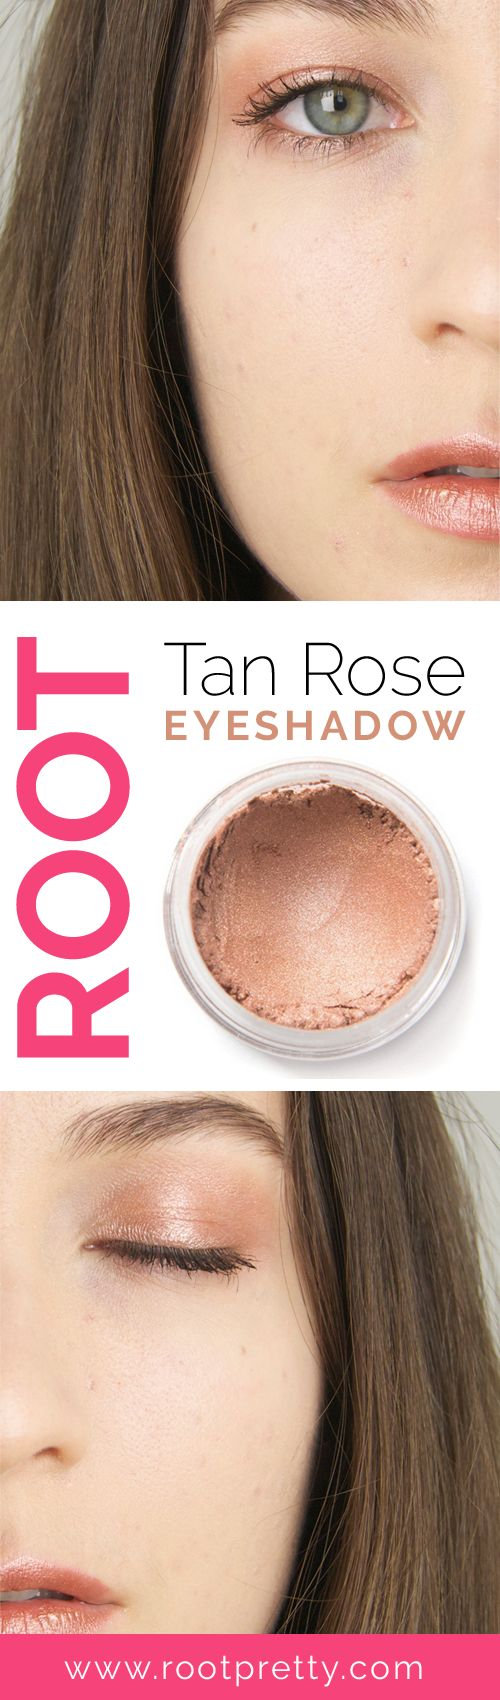 A Root Favorite! Our loose Tan Rose eyeshadow pigment is a STUNNING shimmery tan color with a dusty pink undertone. Use wet or dry for a stunning natural eyeshadow. #roottanrose COLOR SWATCH INGREDIEN